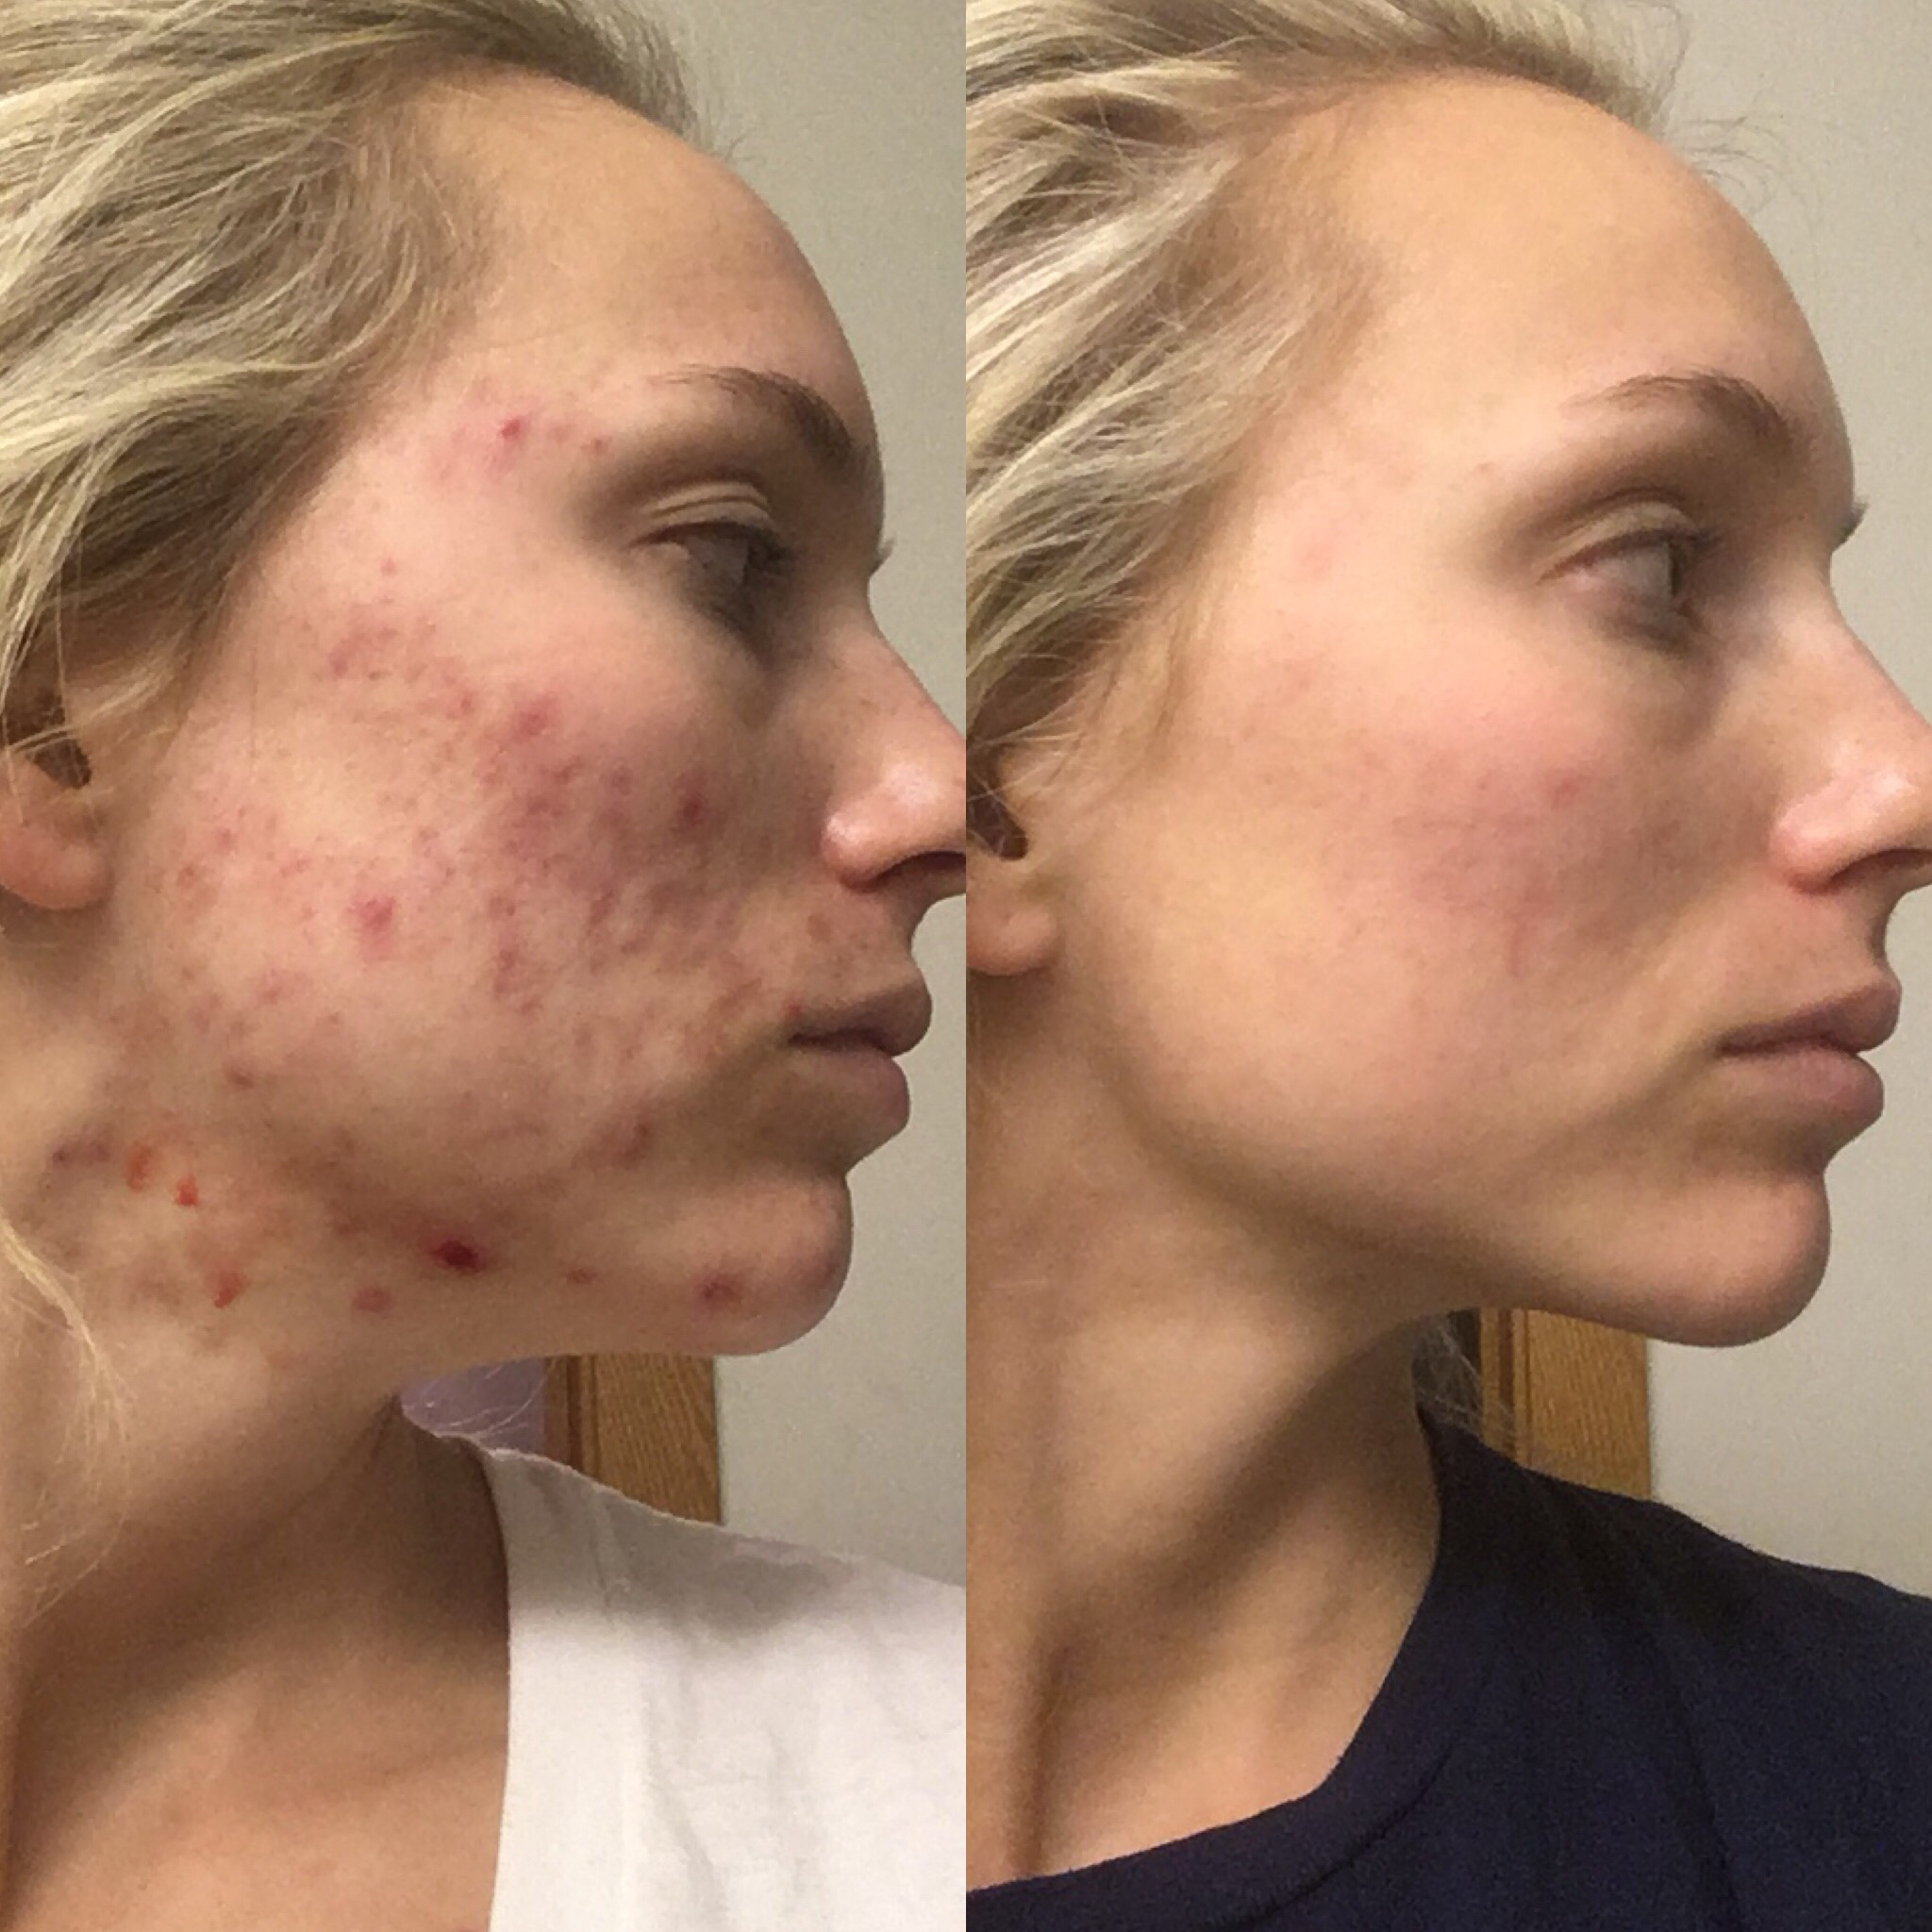 Luminous Beauty Client Before & After Acne Treatment with Peels and Skin Care